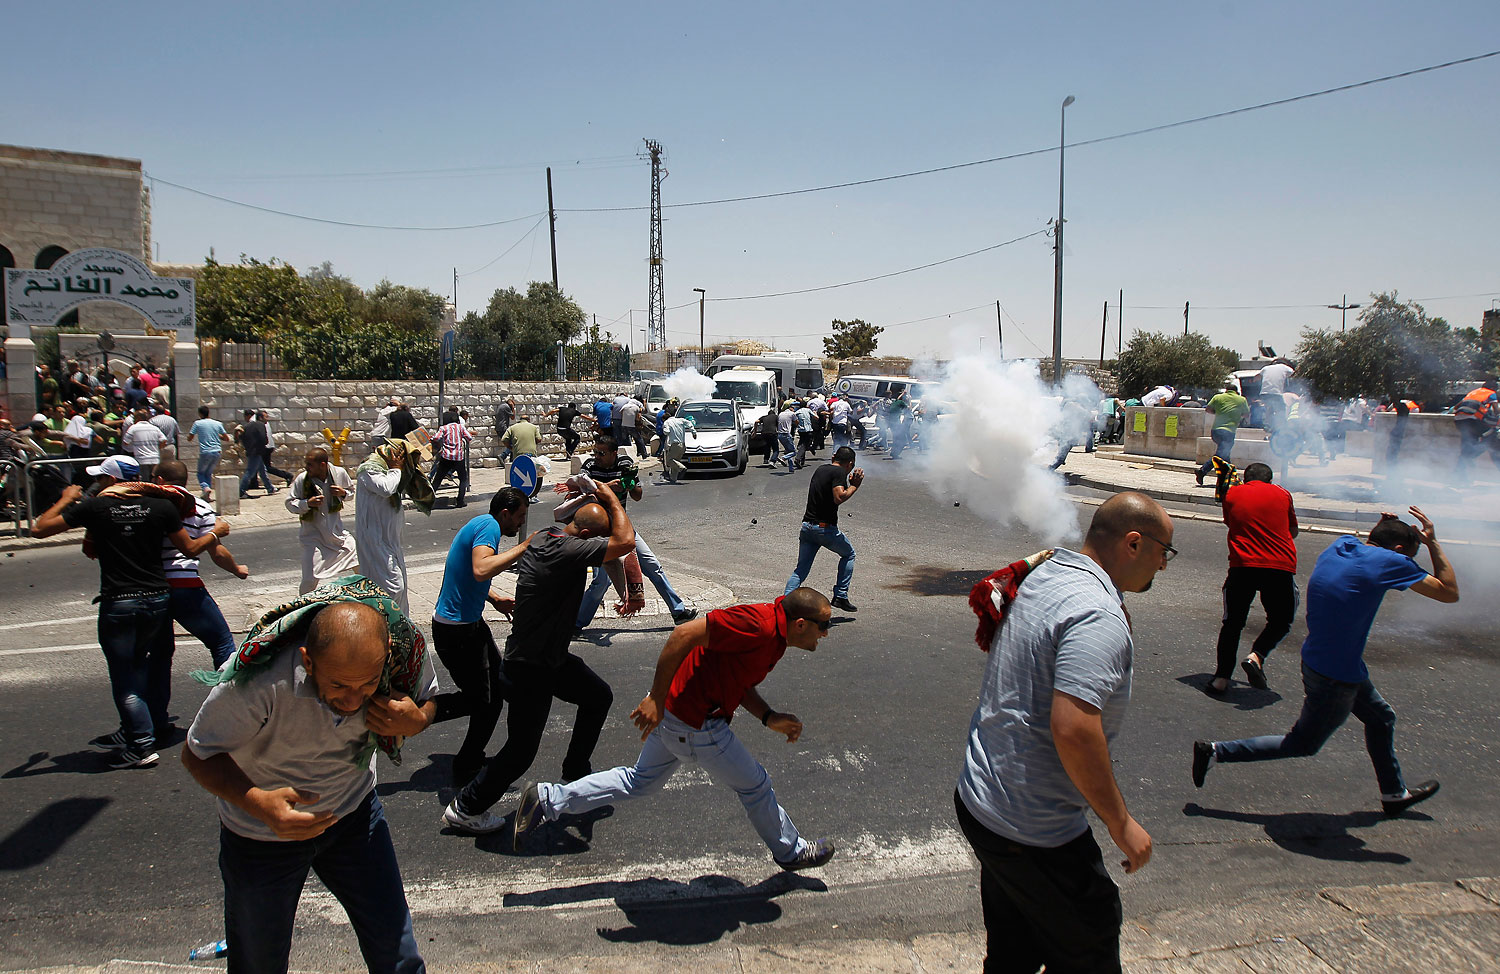 Palestinian protesters run away from tear gas fired by Israeli soldiers during clashes after Friday prayers in the Arab east Jerusalem neighbourhood of Ras al-Amud, July 4, 2014.